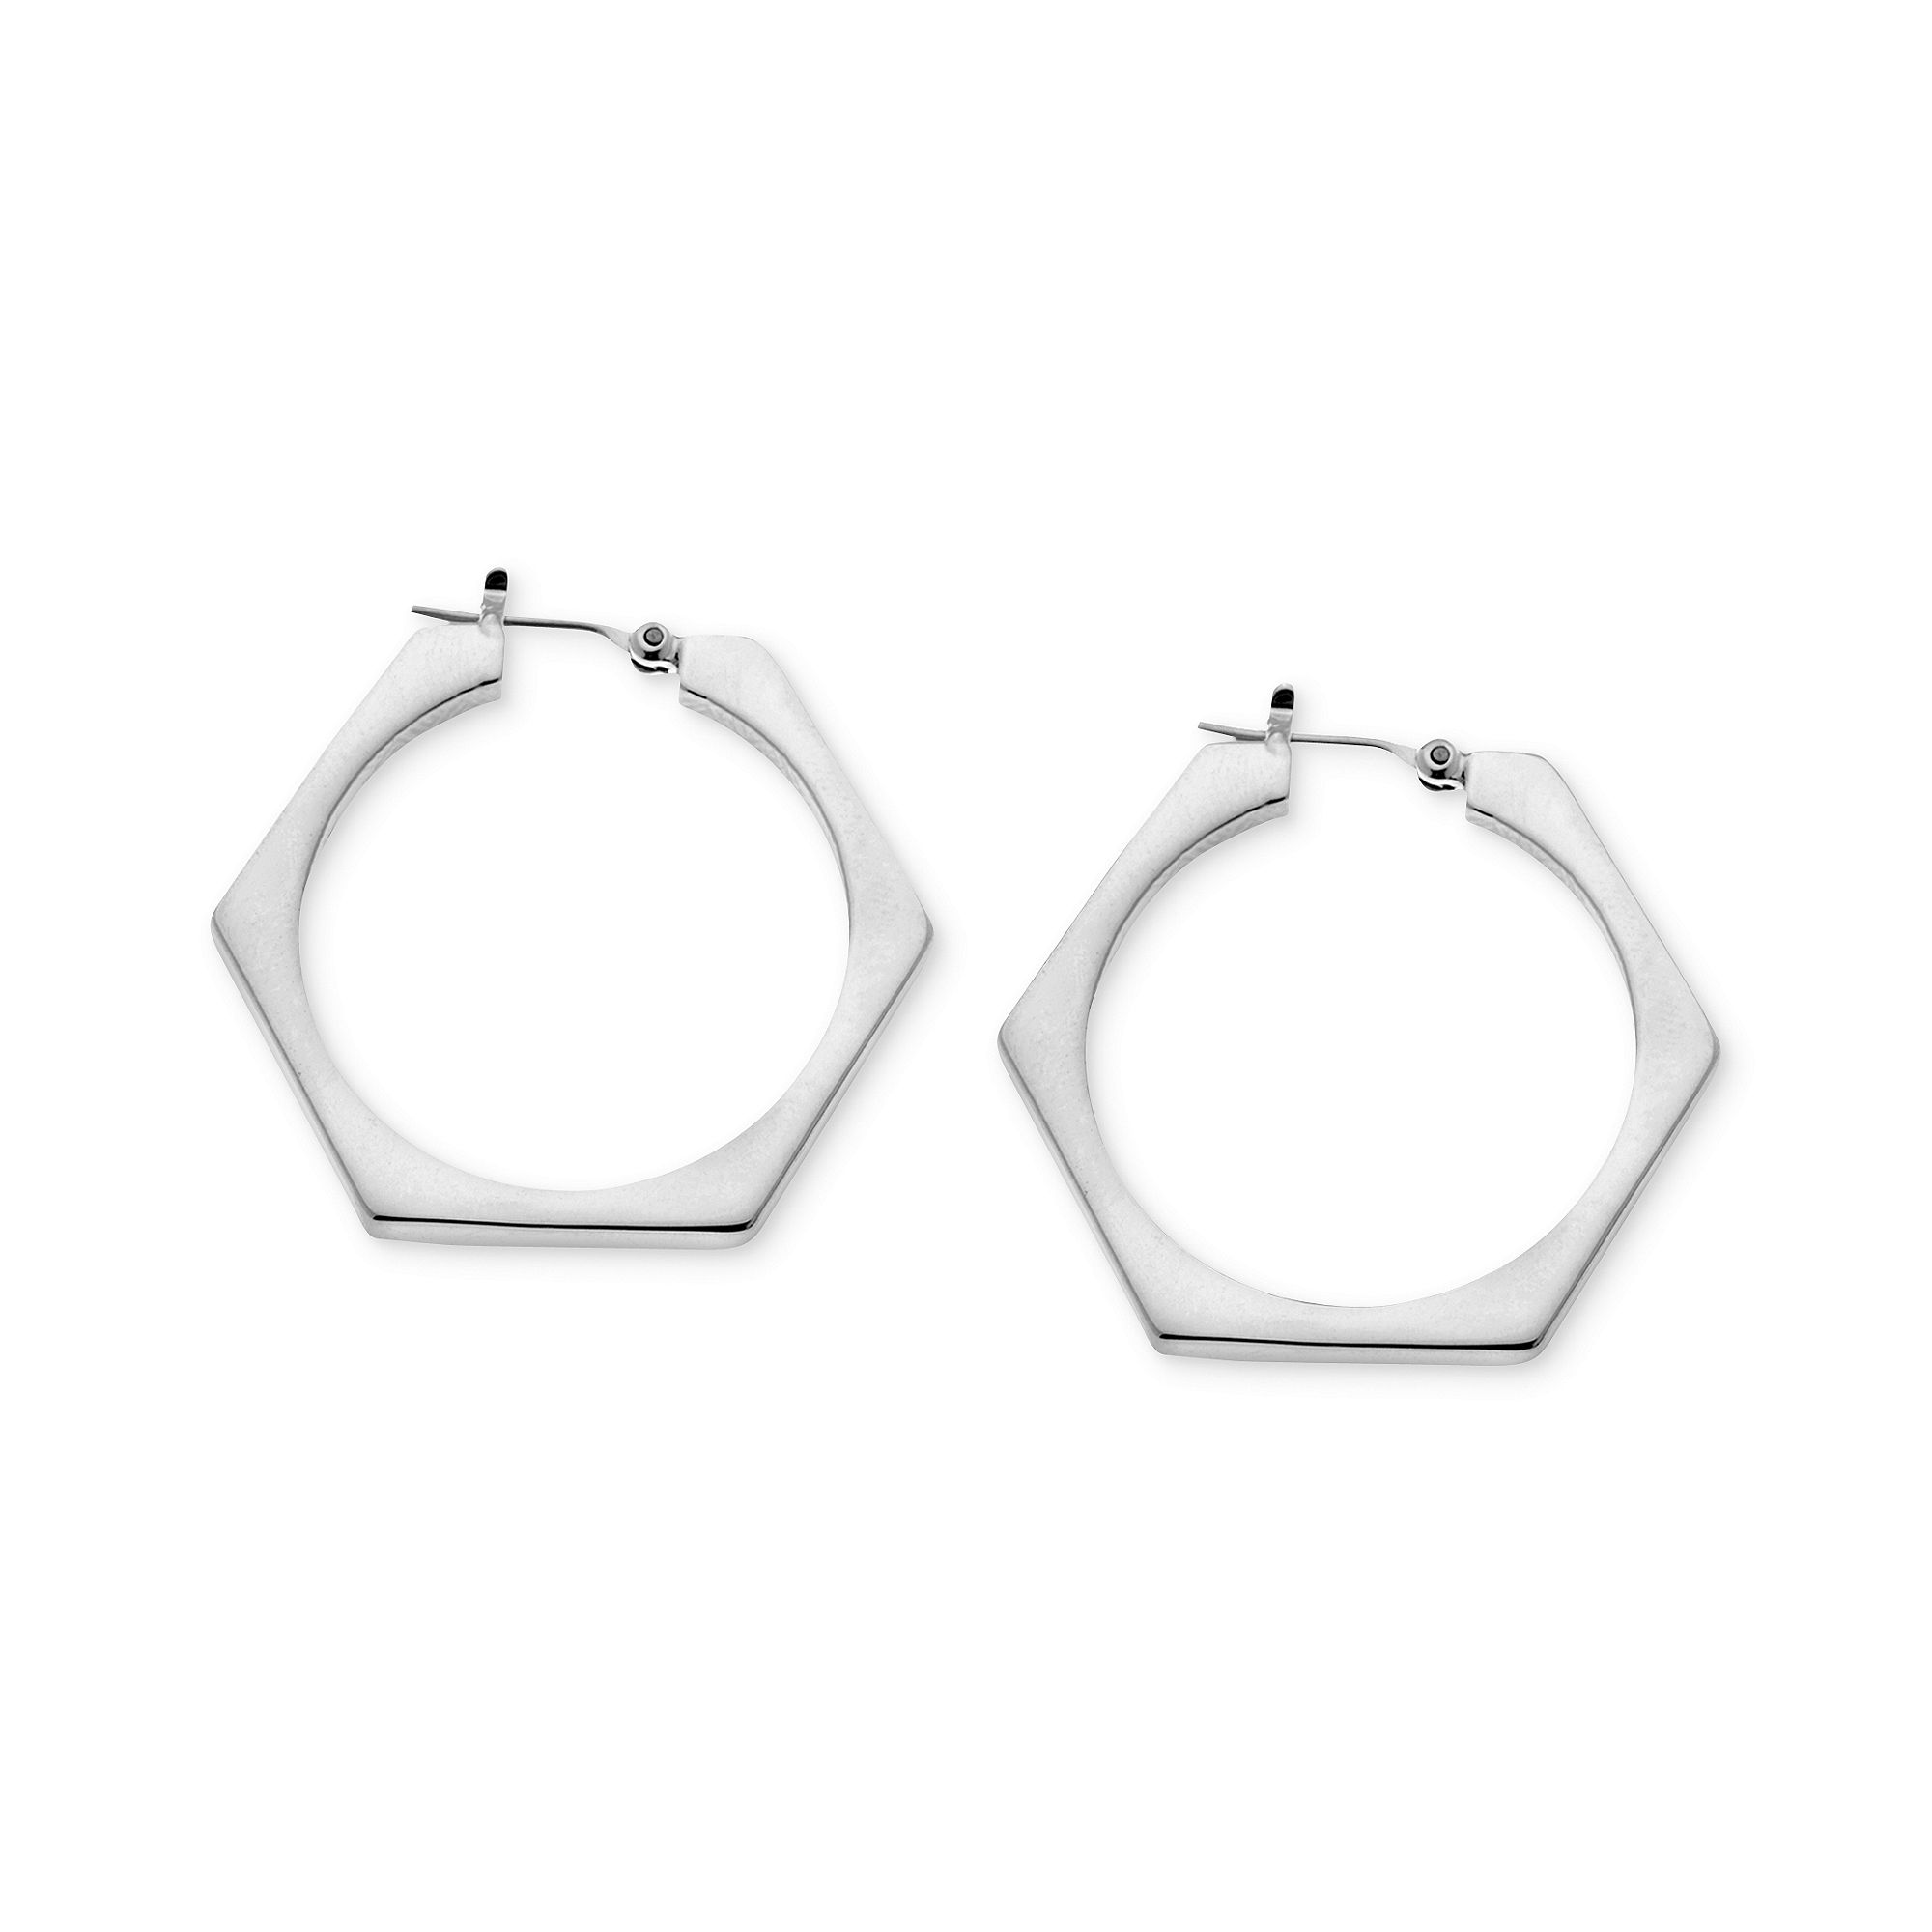 hexagon studio jewelry products and design lolly img earrings cloud geri